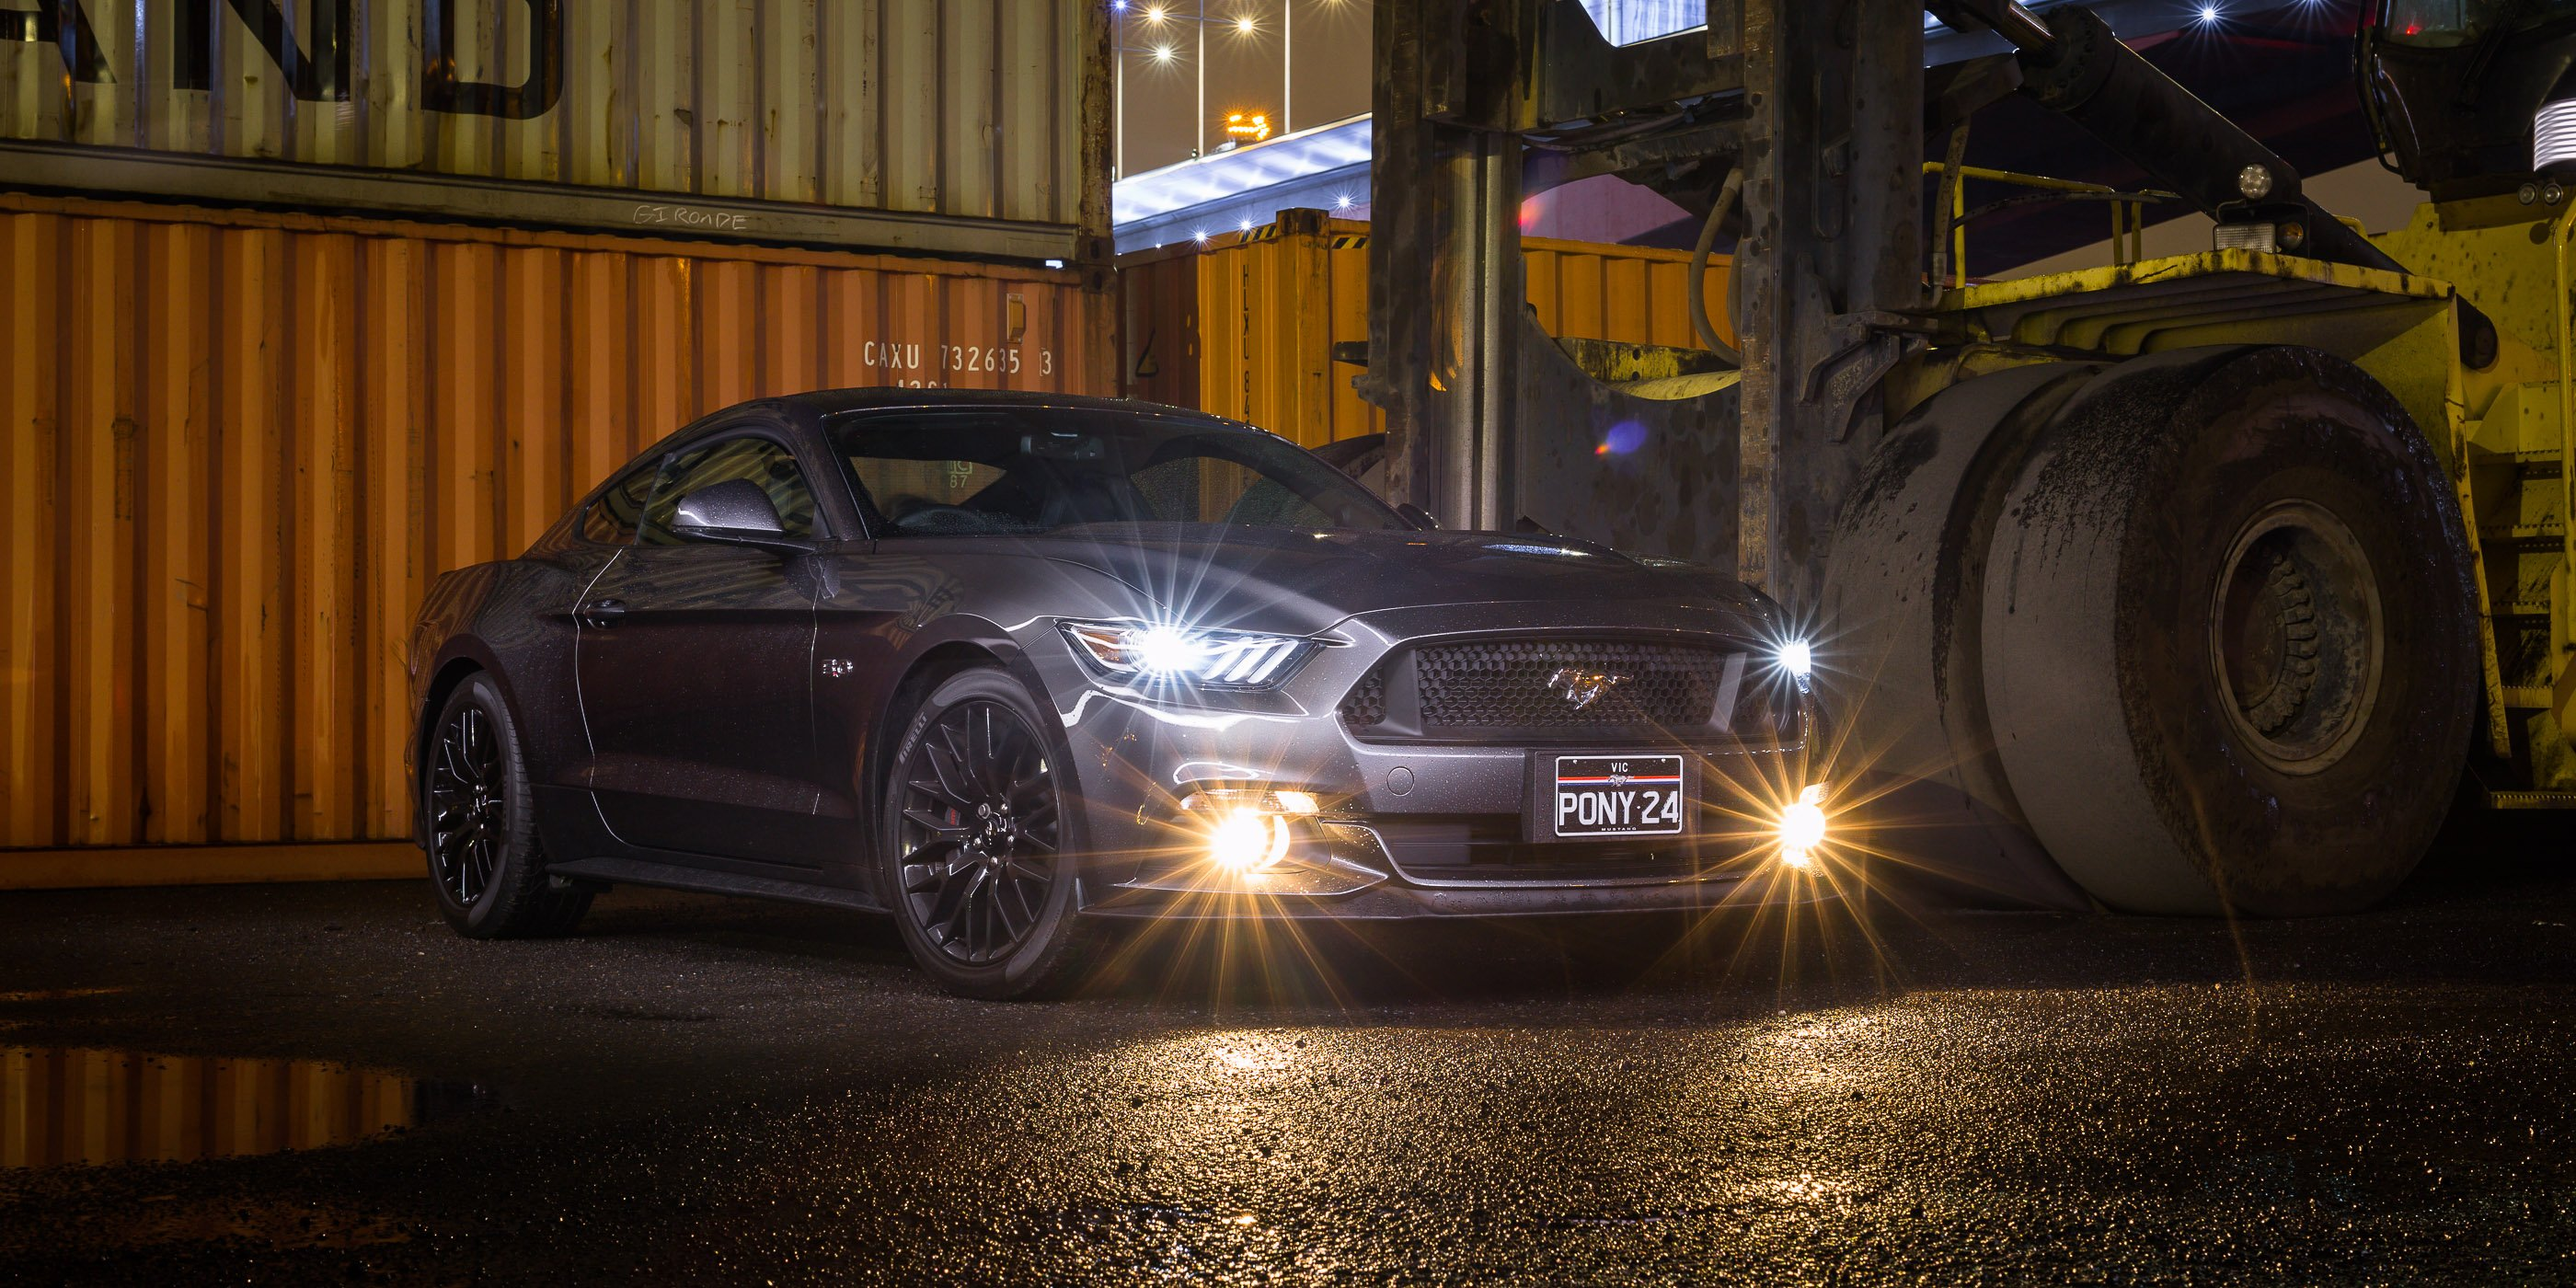 2015 ford mustang gt auto vs manual